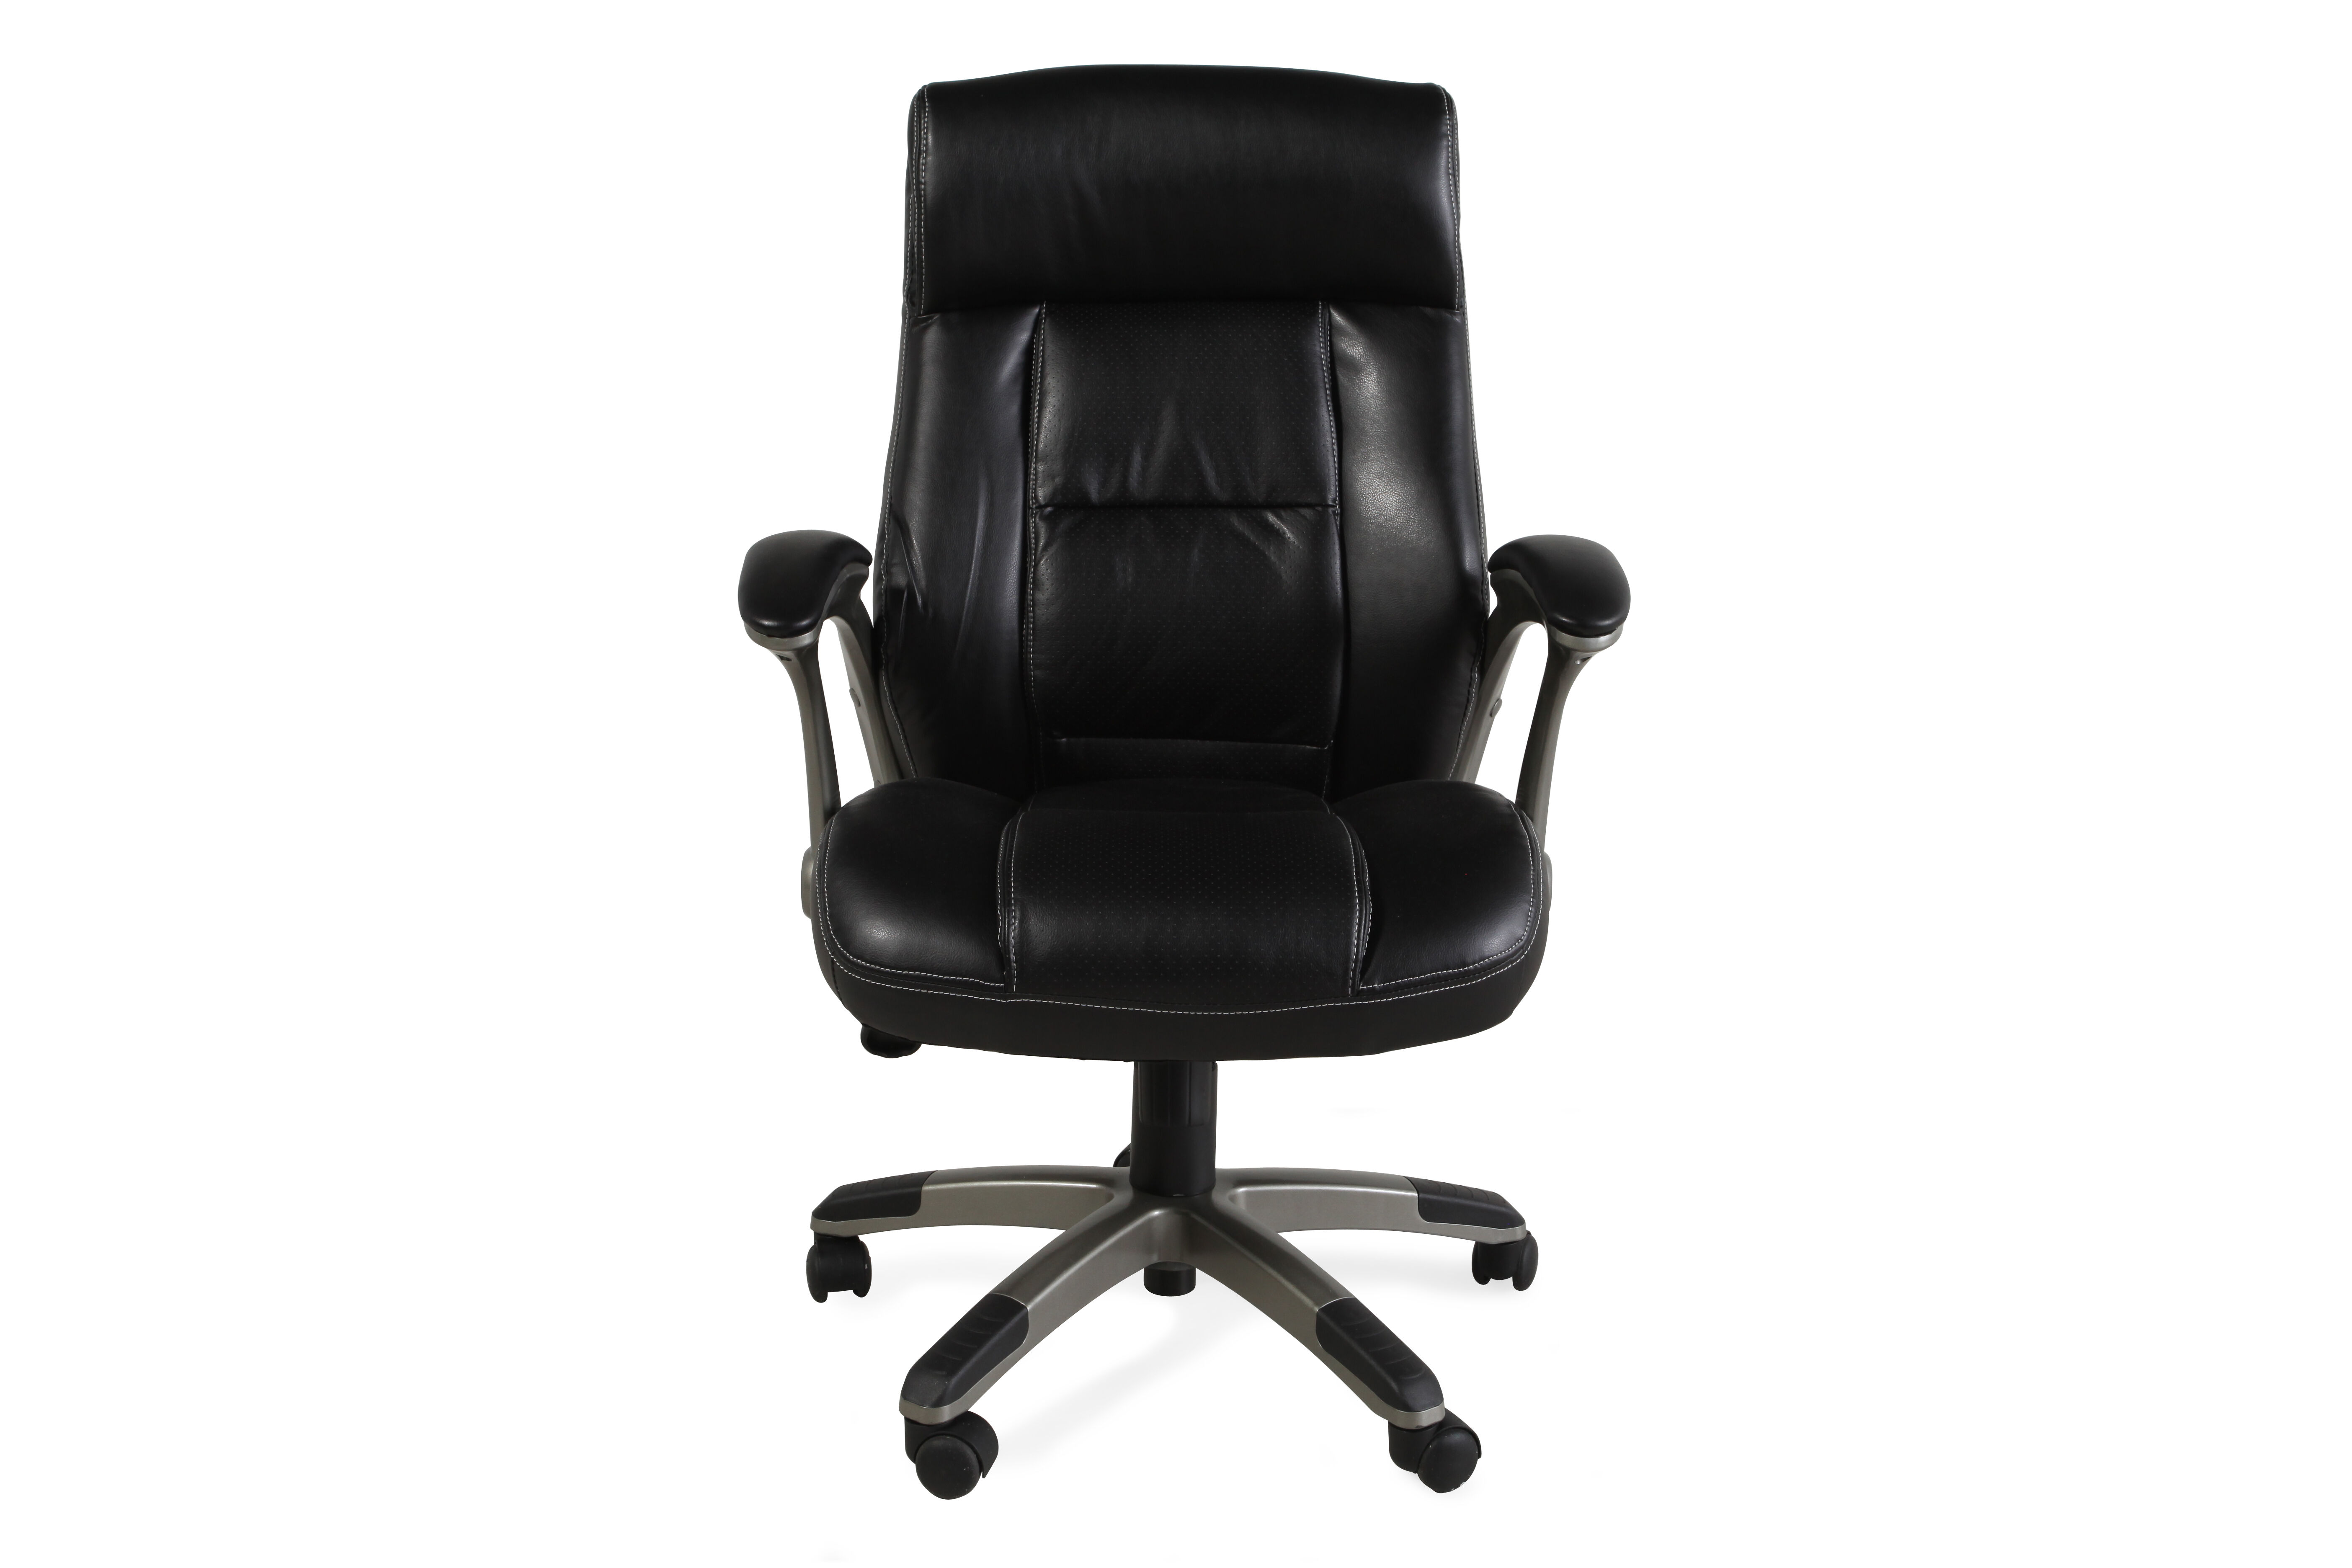 Pleated Leather Swivel Tilt Office Chairu0026nbsp ...  sc 1 st  Mathis Brothers & Home Office Chairs - Desk Chairs | Mathis Brothers